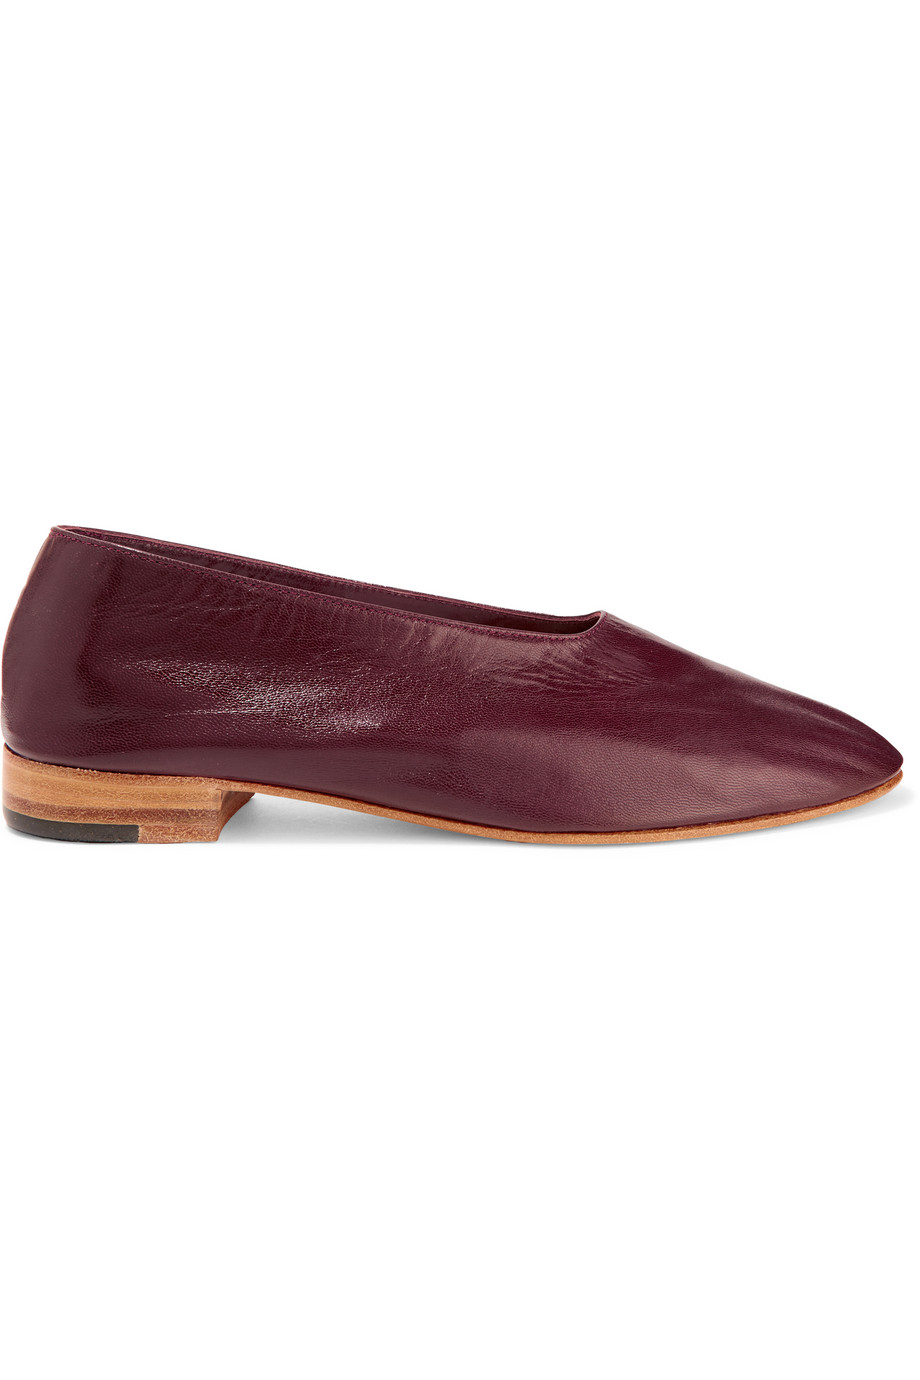 Glove Leather Pumps, Burgundy, Women's US Size: 7, Size: 37.5